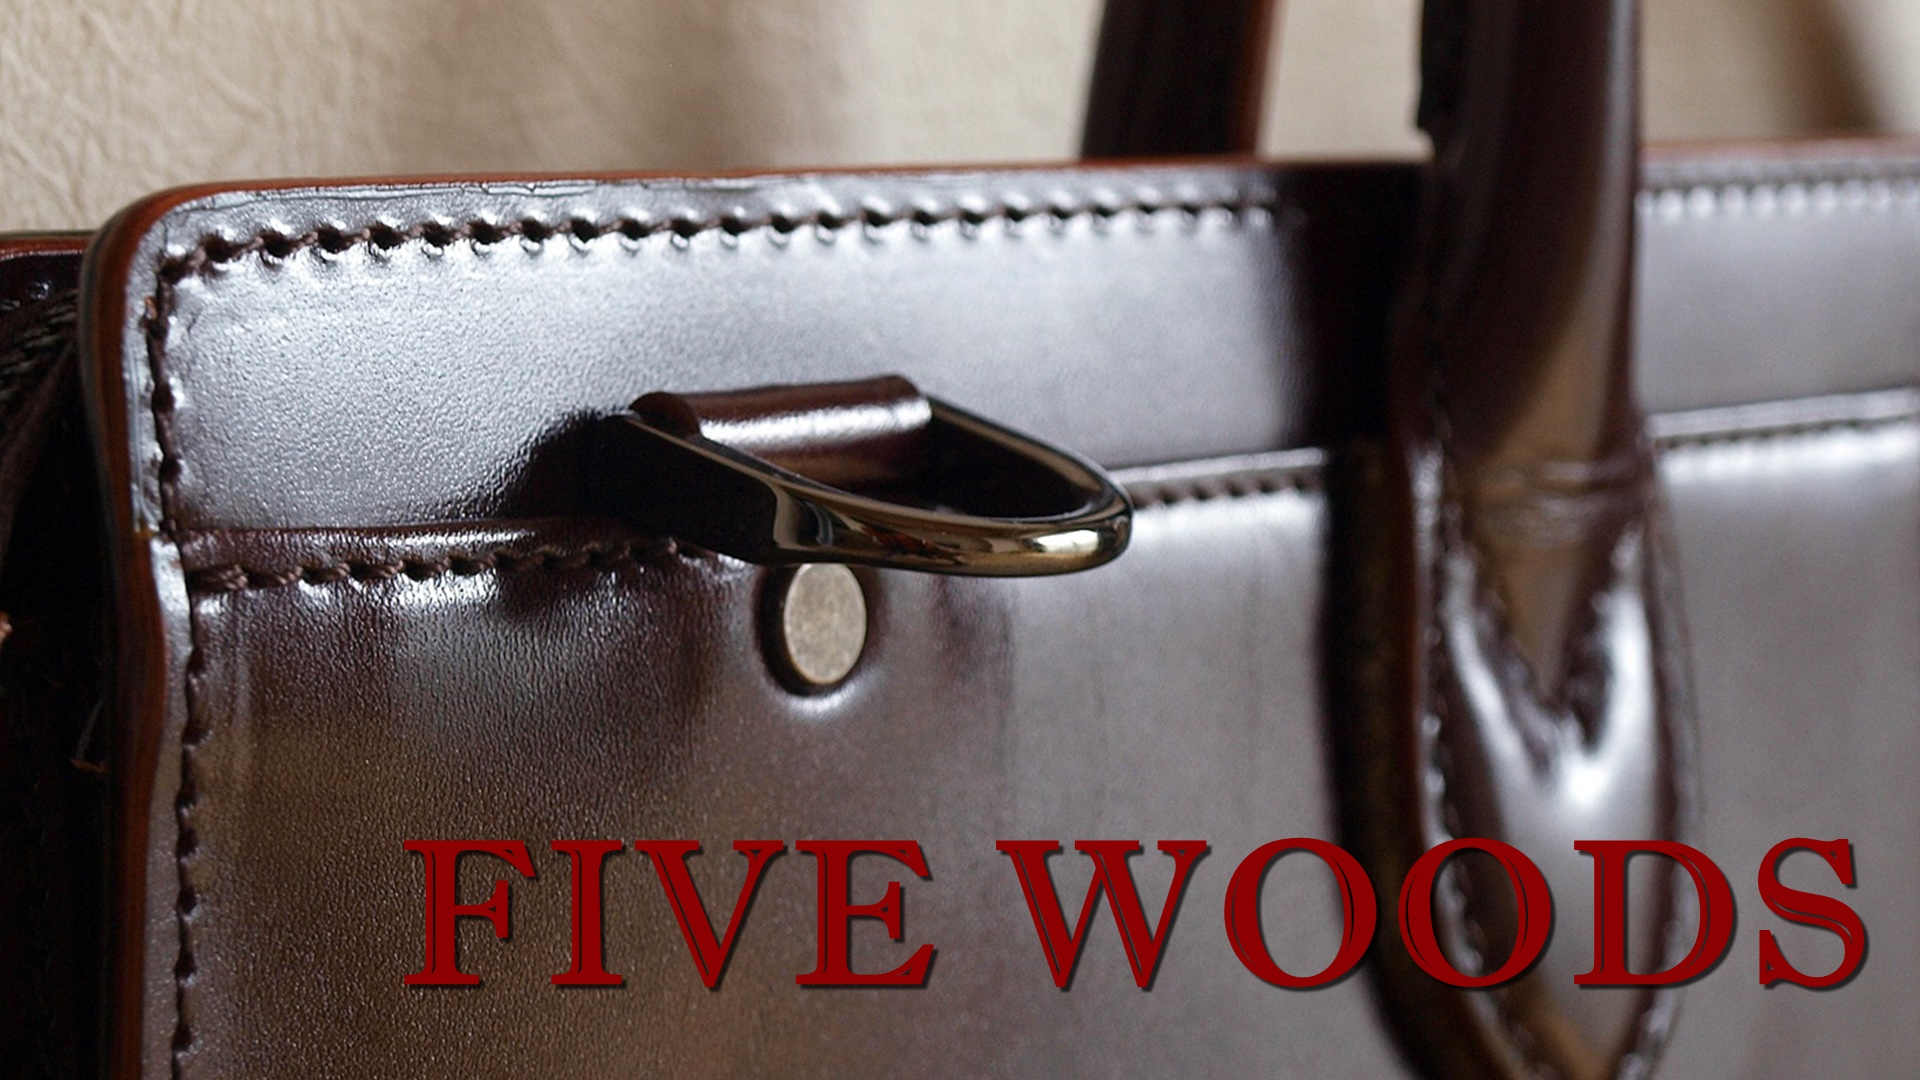 FIVE WOODS_ted'sシリーズ